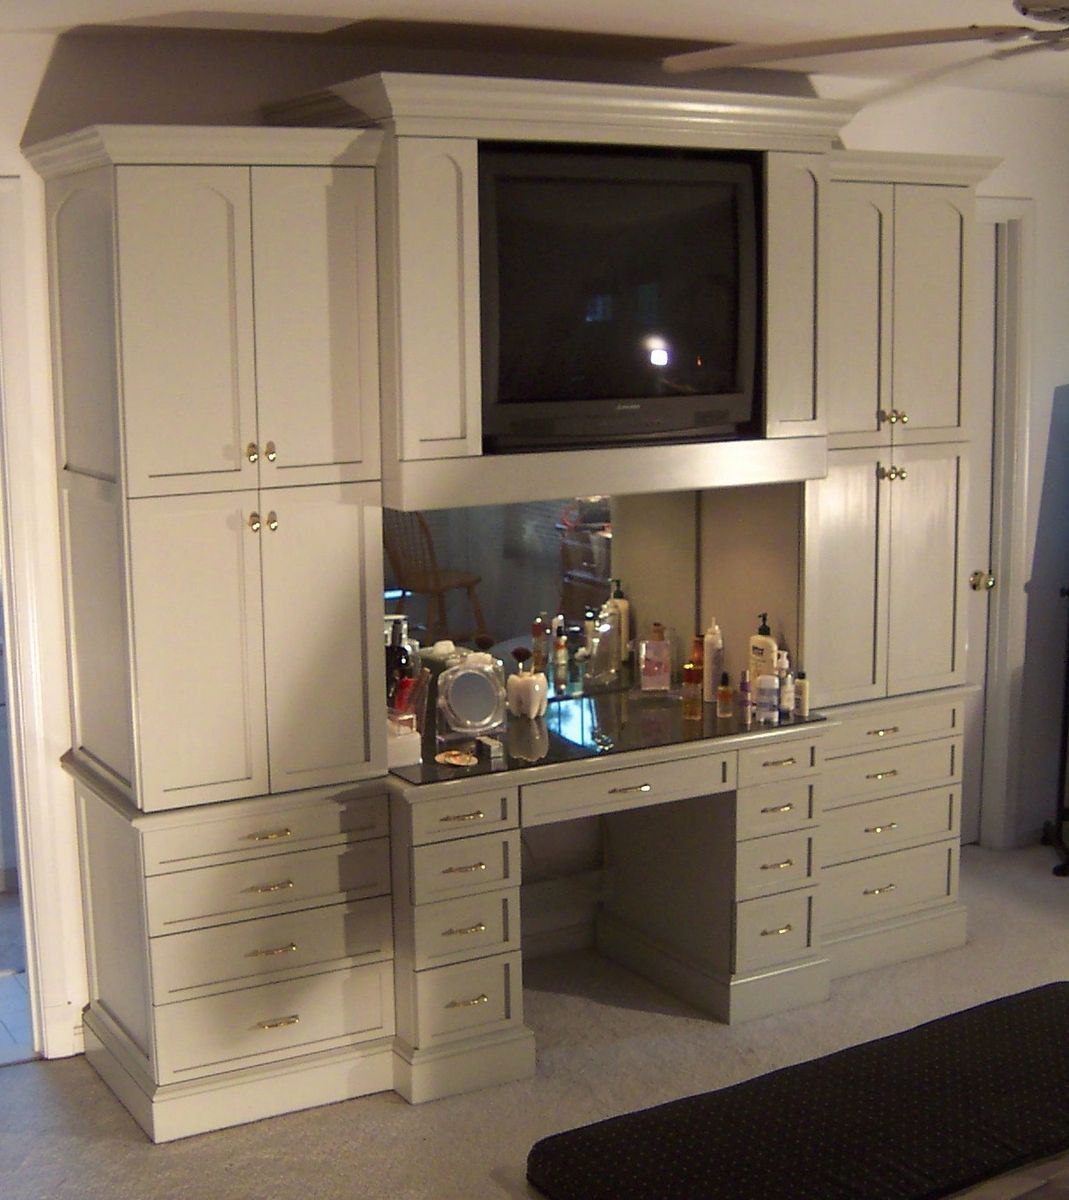 Bedroom cabinet and makeup table built in i want sans tv in the vanity for the home Vanity for master bedroom